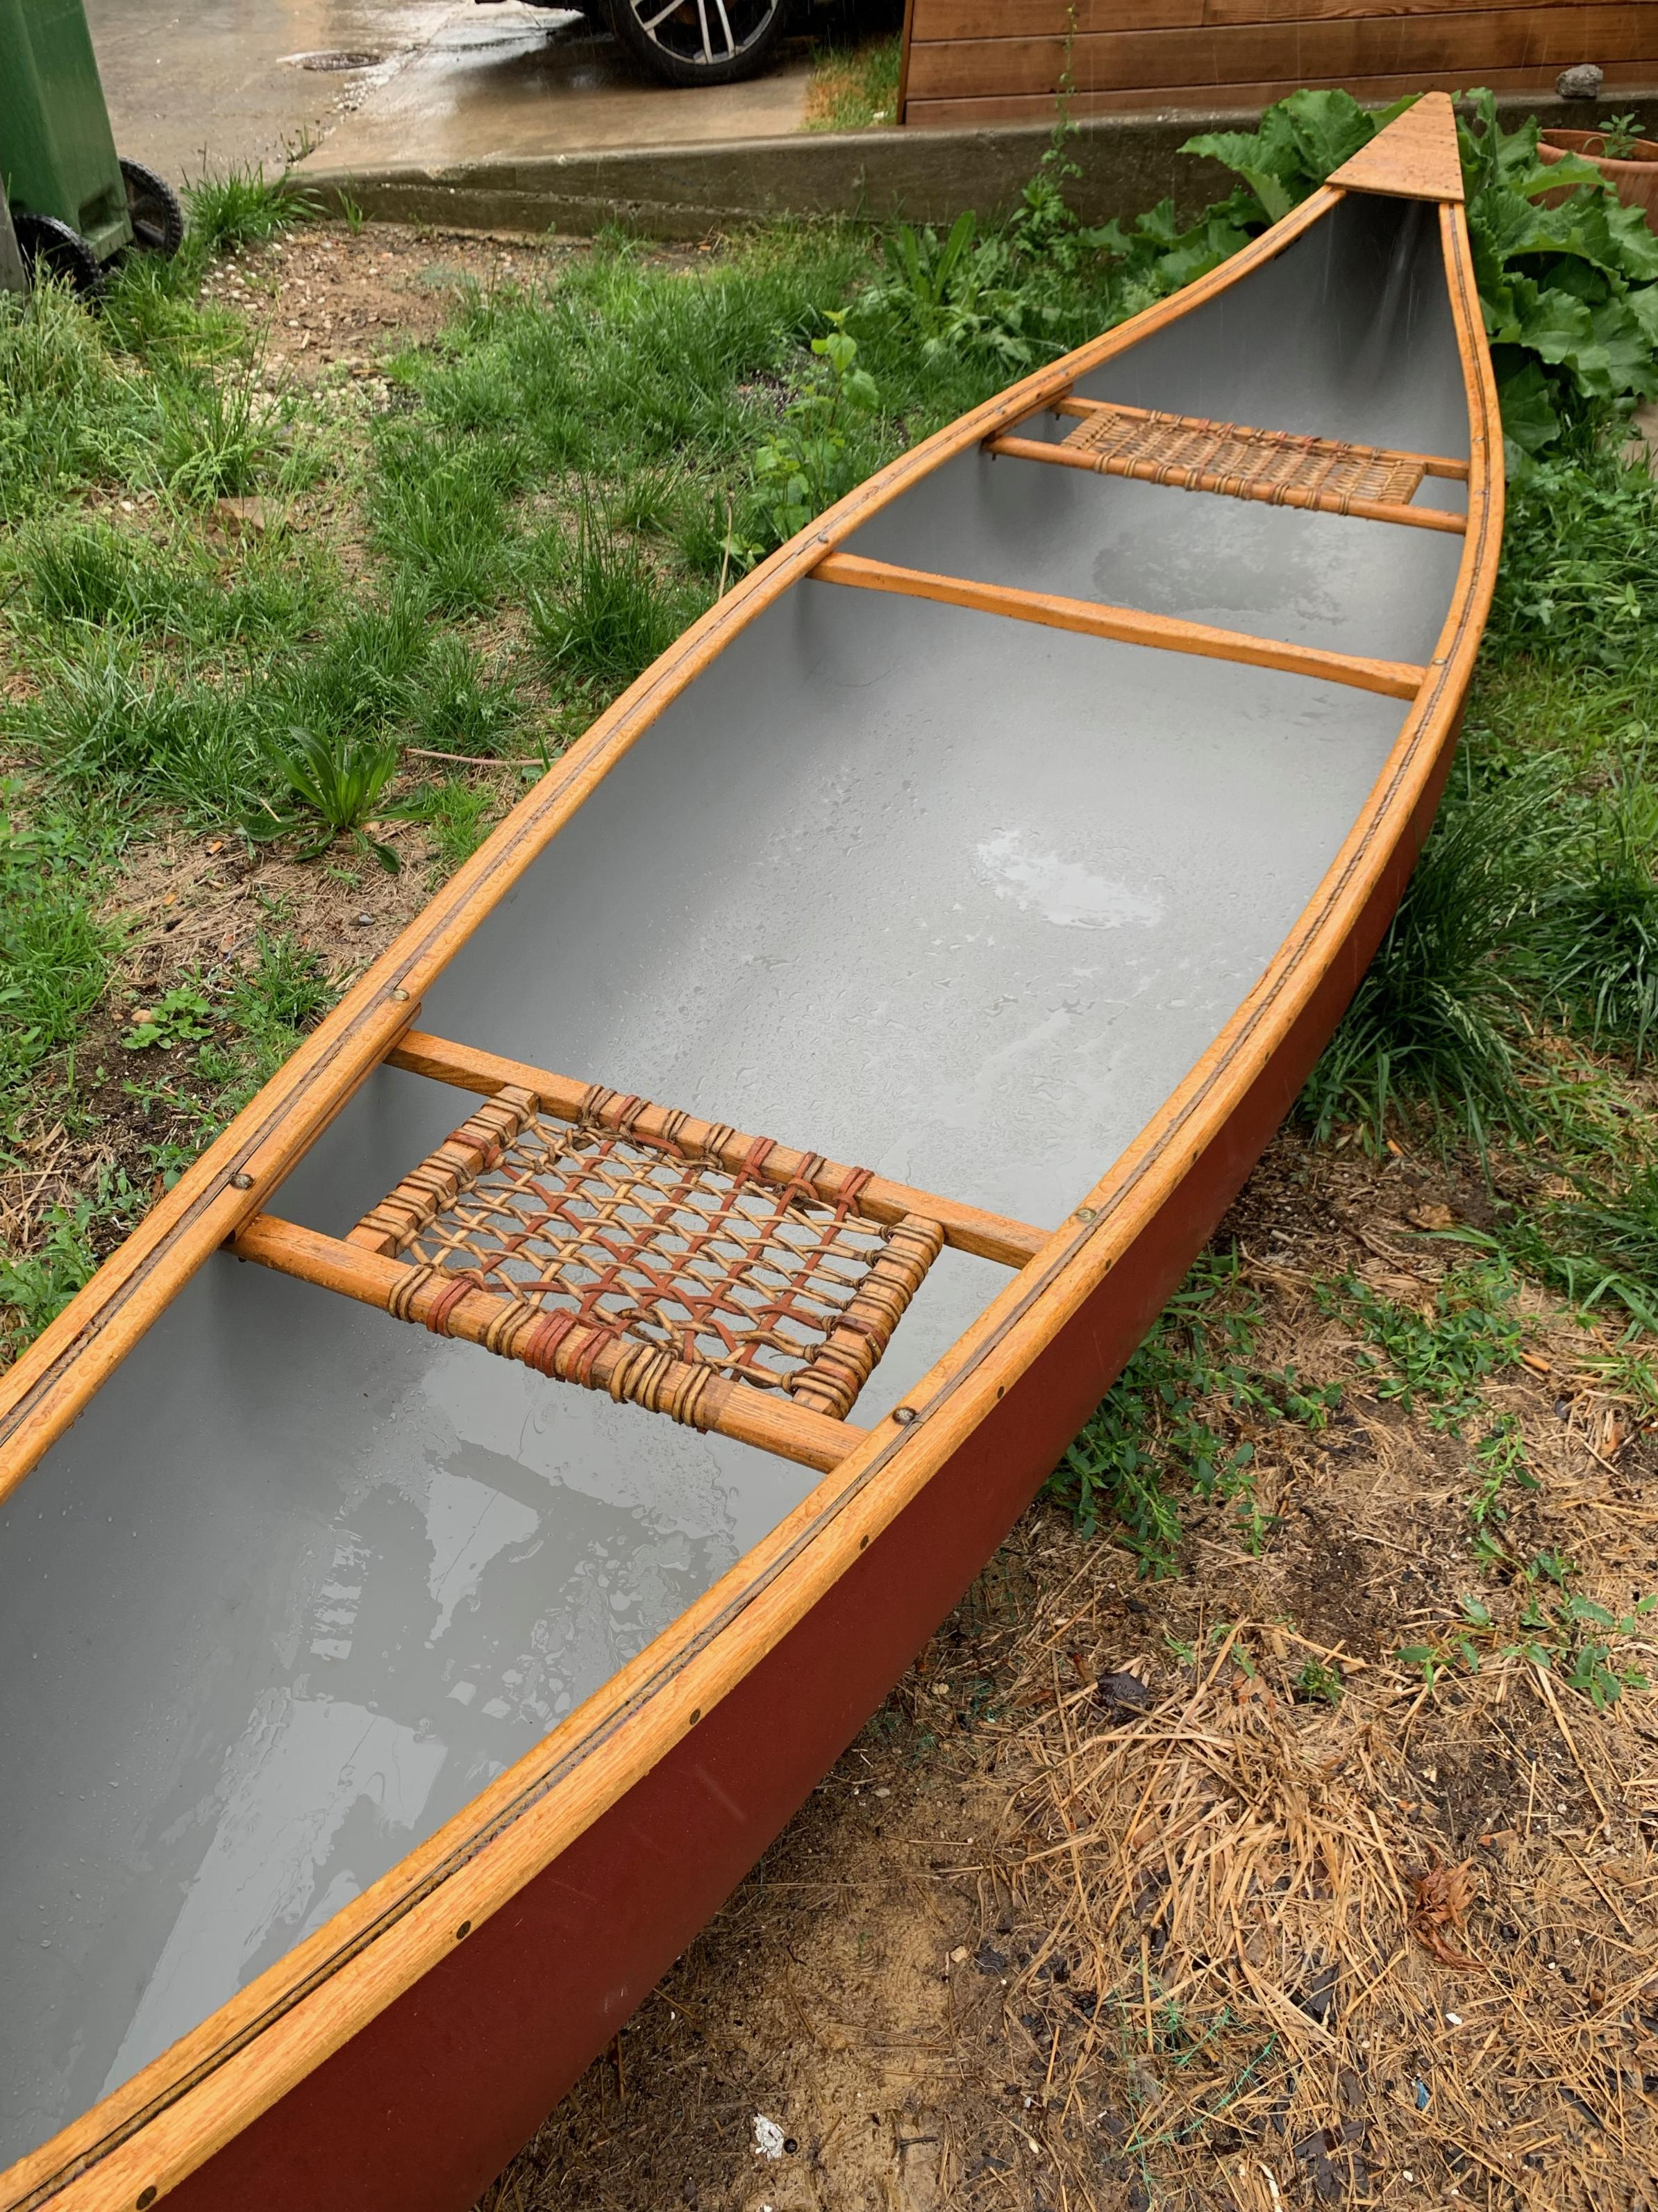 BWCA Beautiful 15 5' Royalex Front Royal Canoe for sale